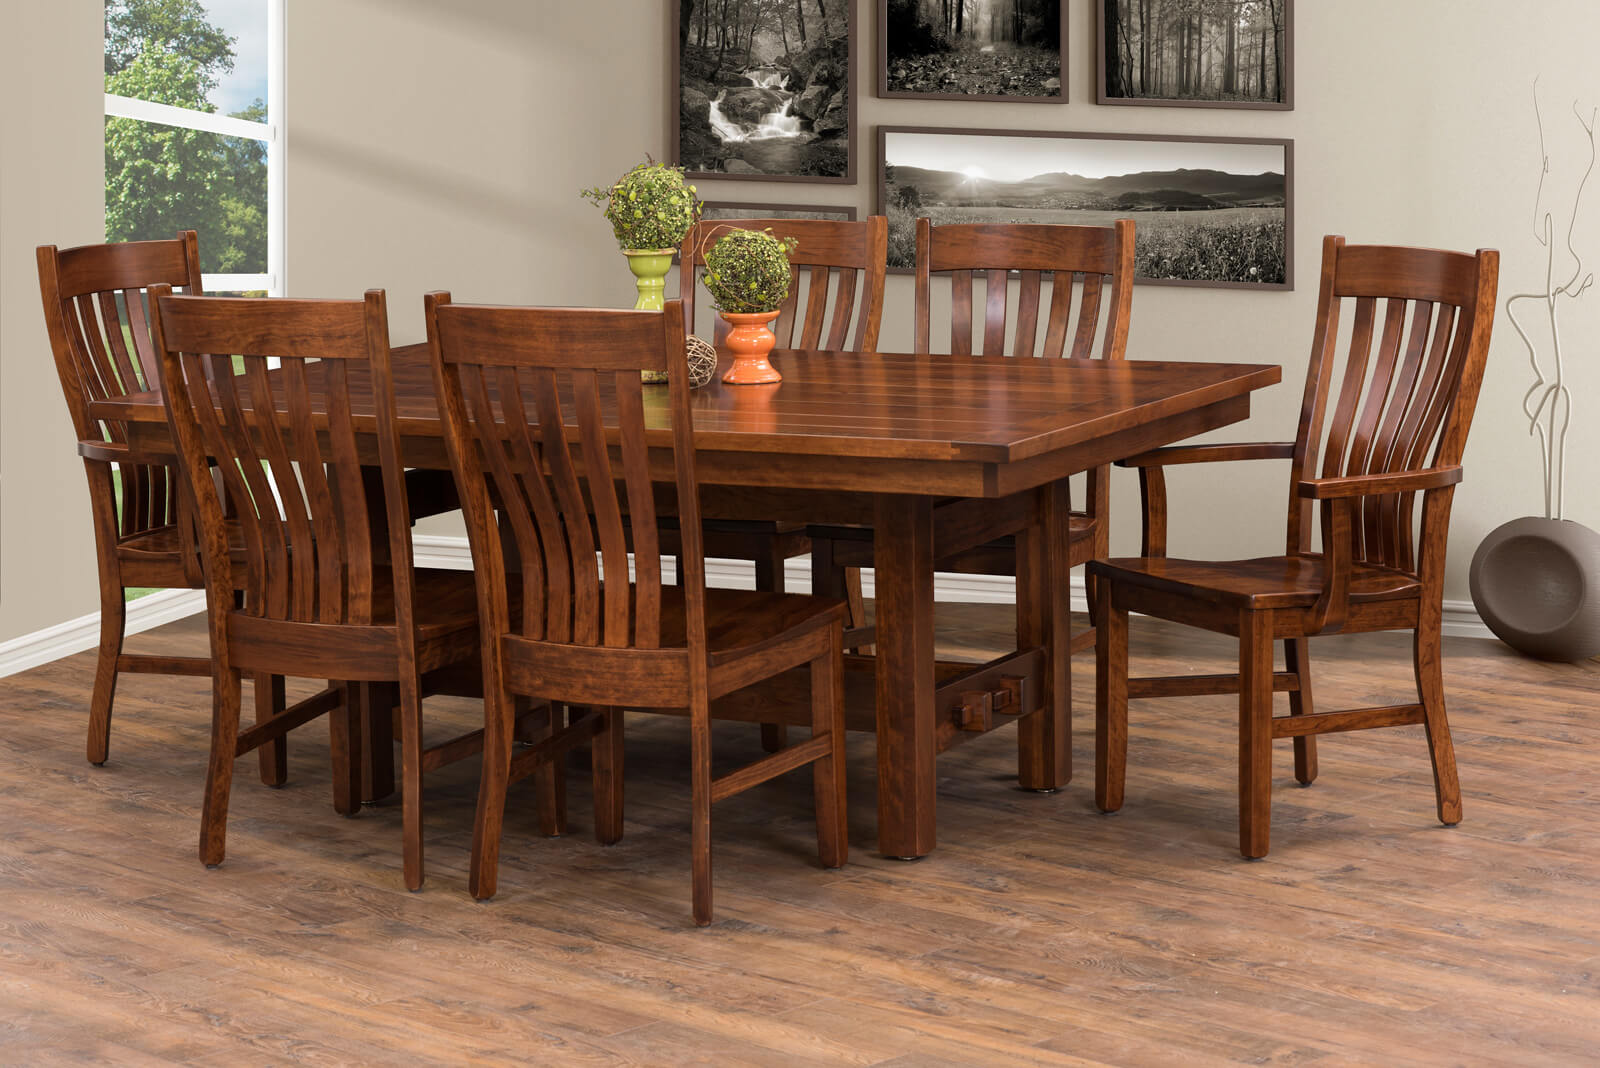 Traditional handcrafted dining table